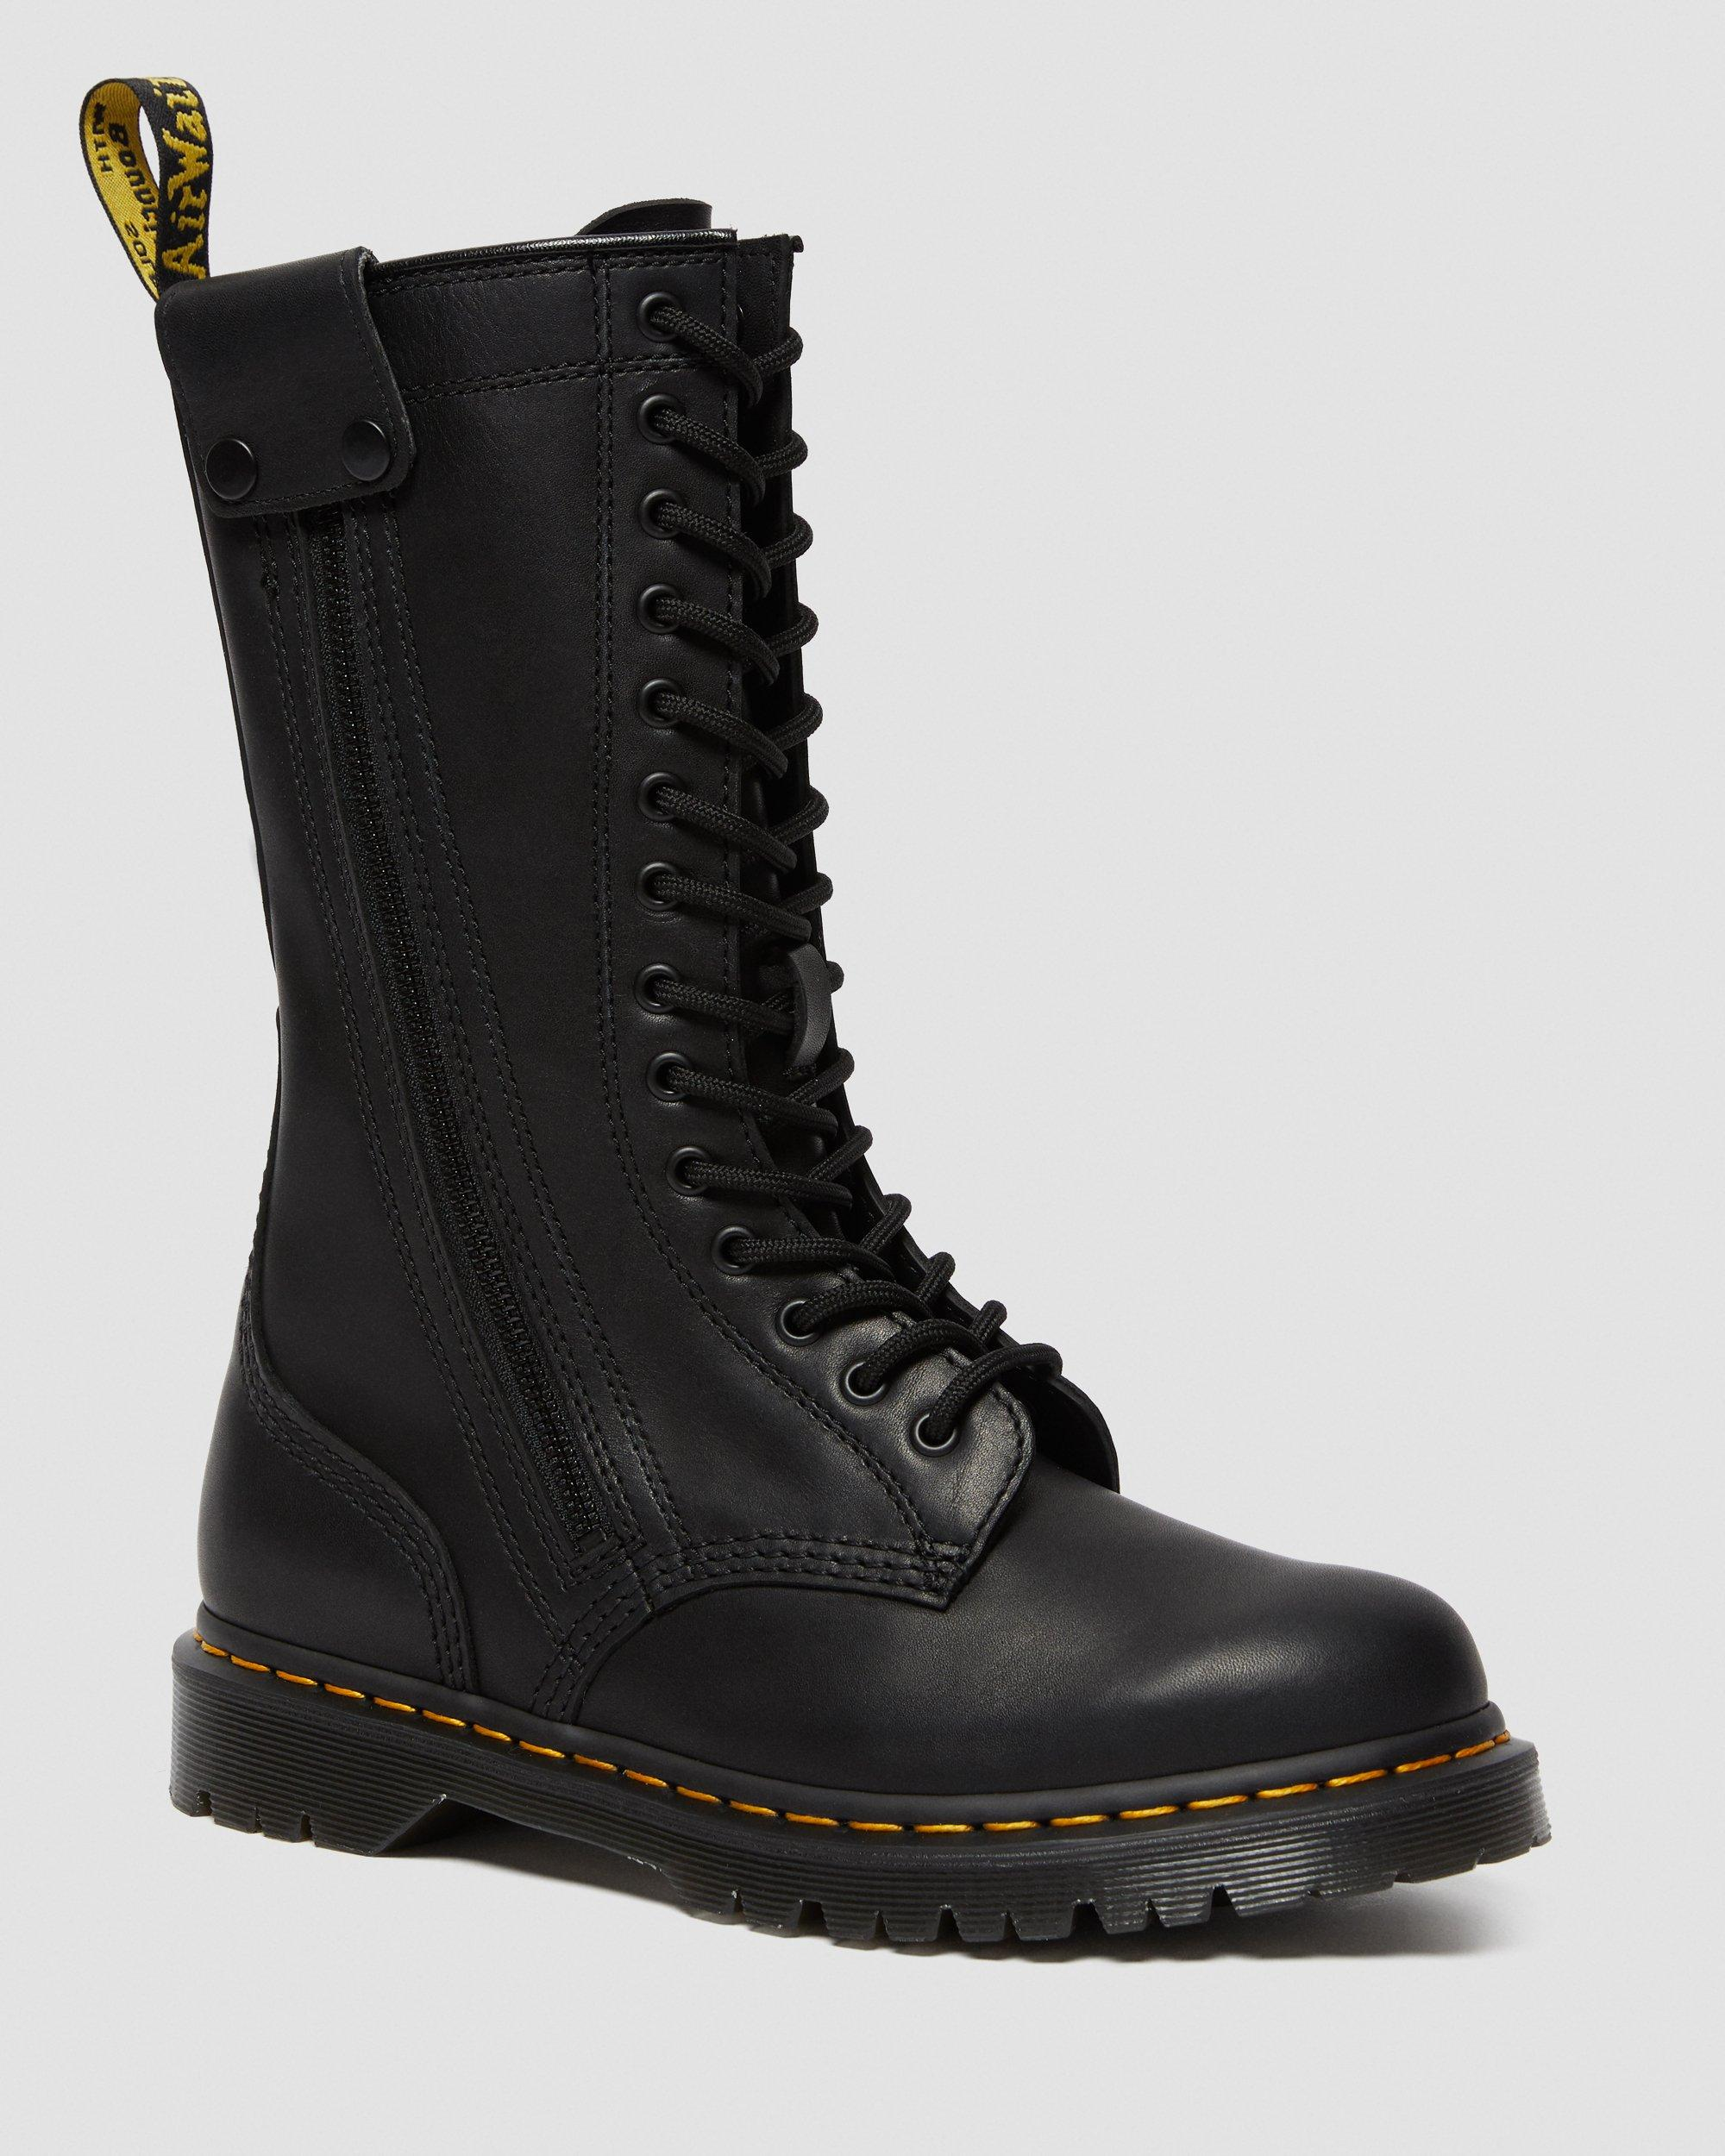 HANLEY HIGH LEATHER BOOTS | Dr. Martens